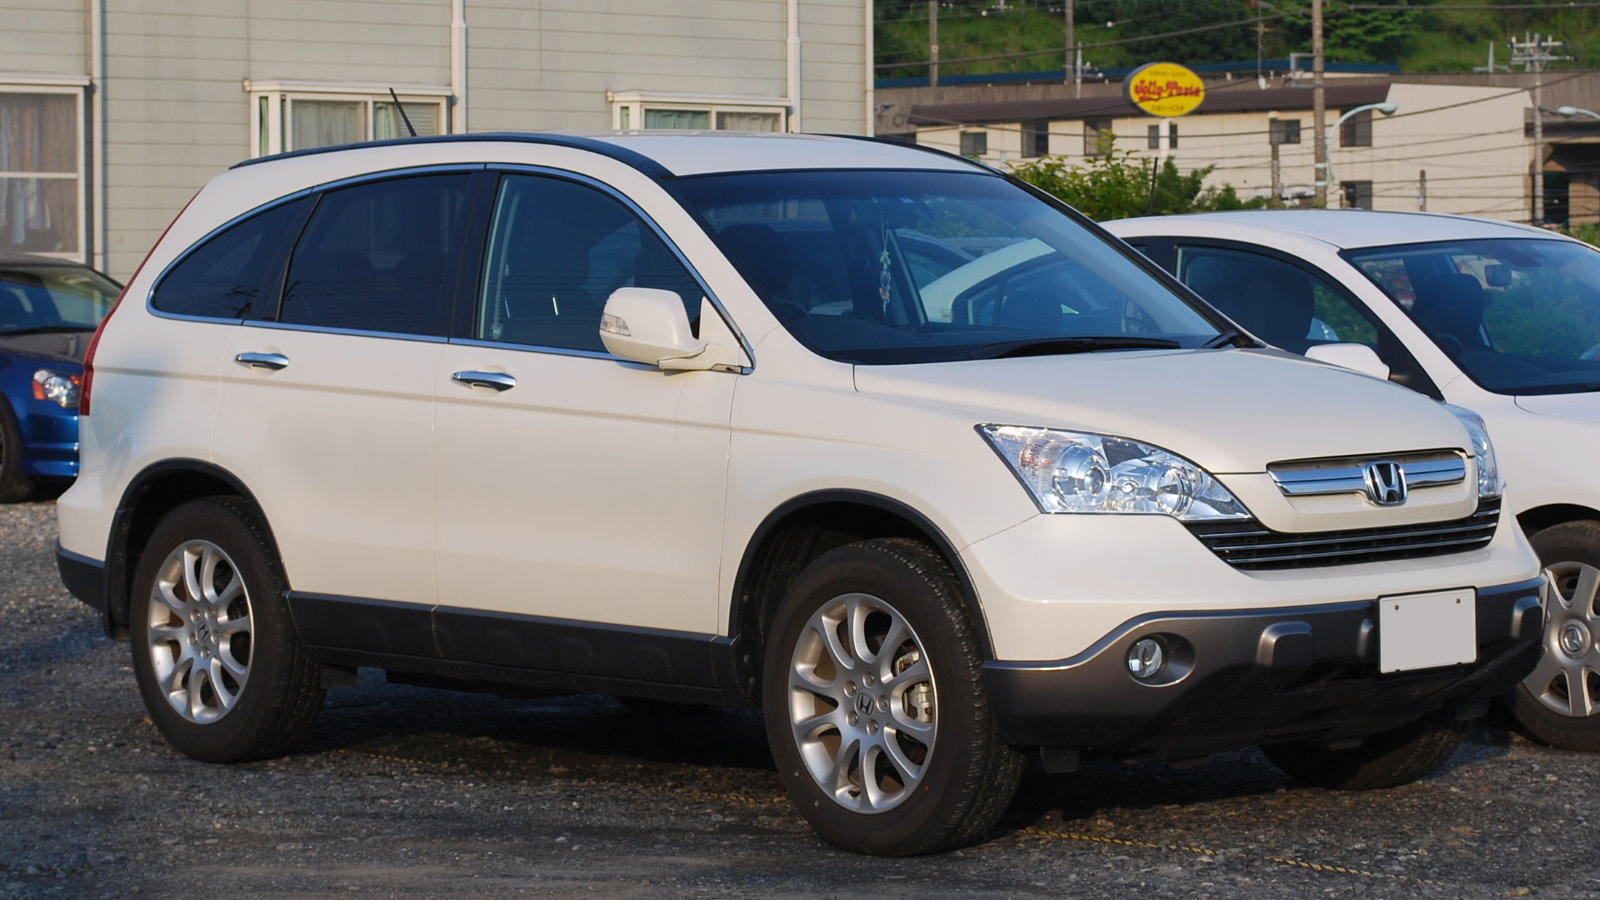 honda cr-v (third generation) - wikipedia